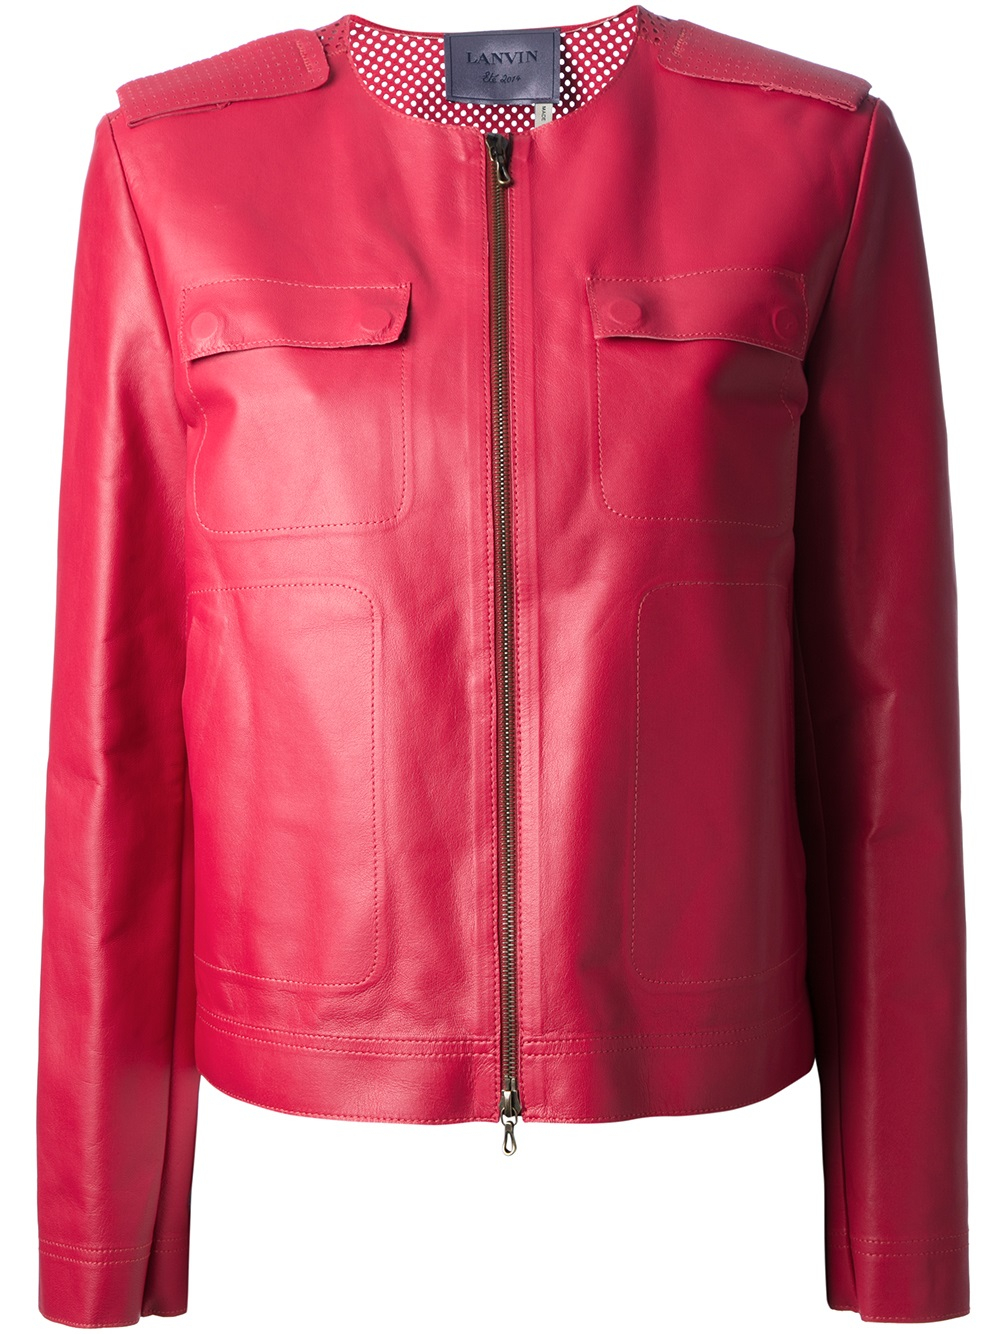 Lanvin Collarless Jacket in Red | Lyst